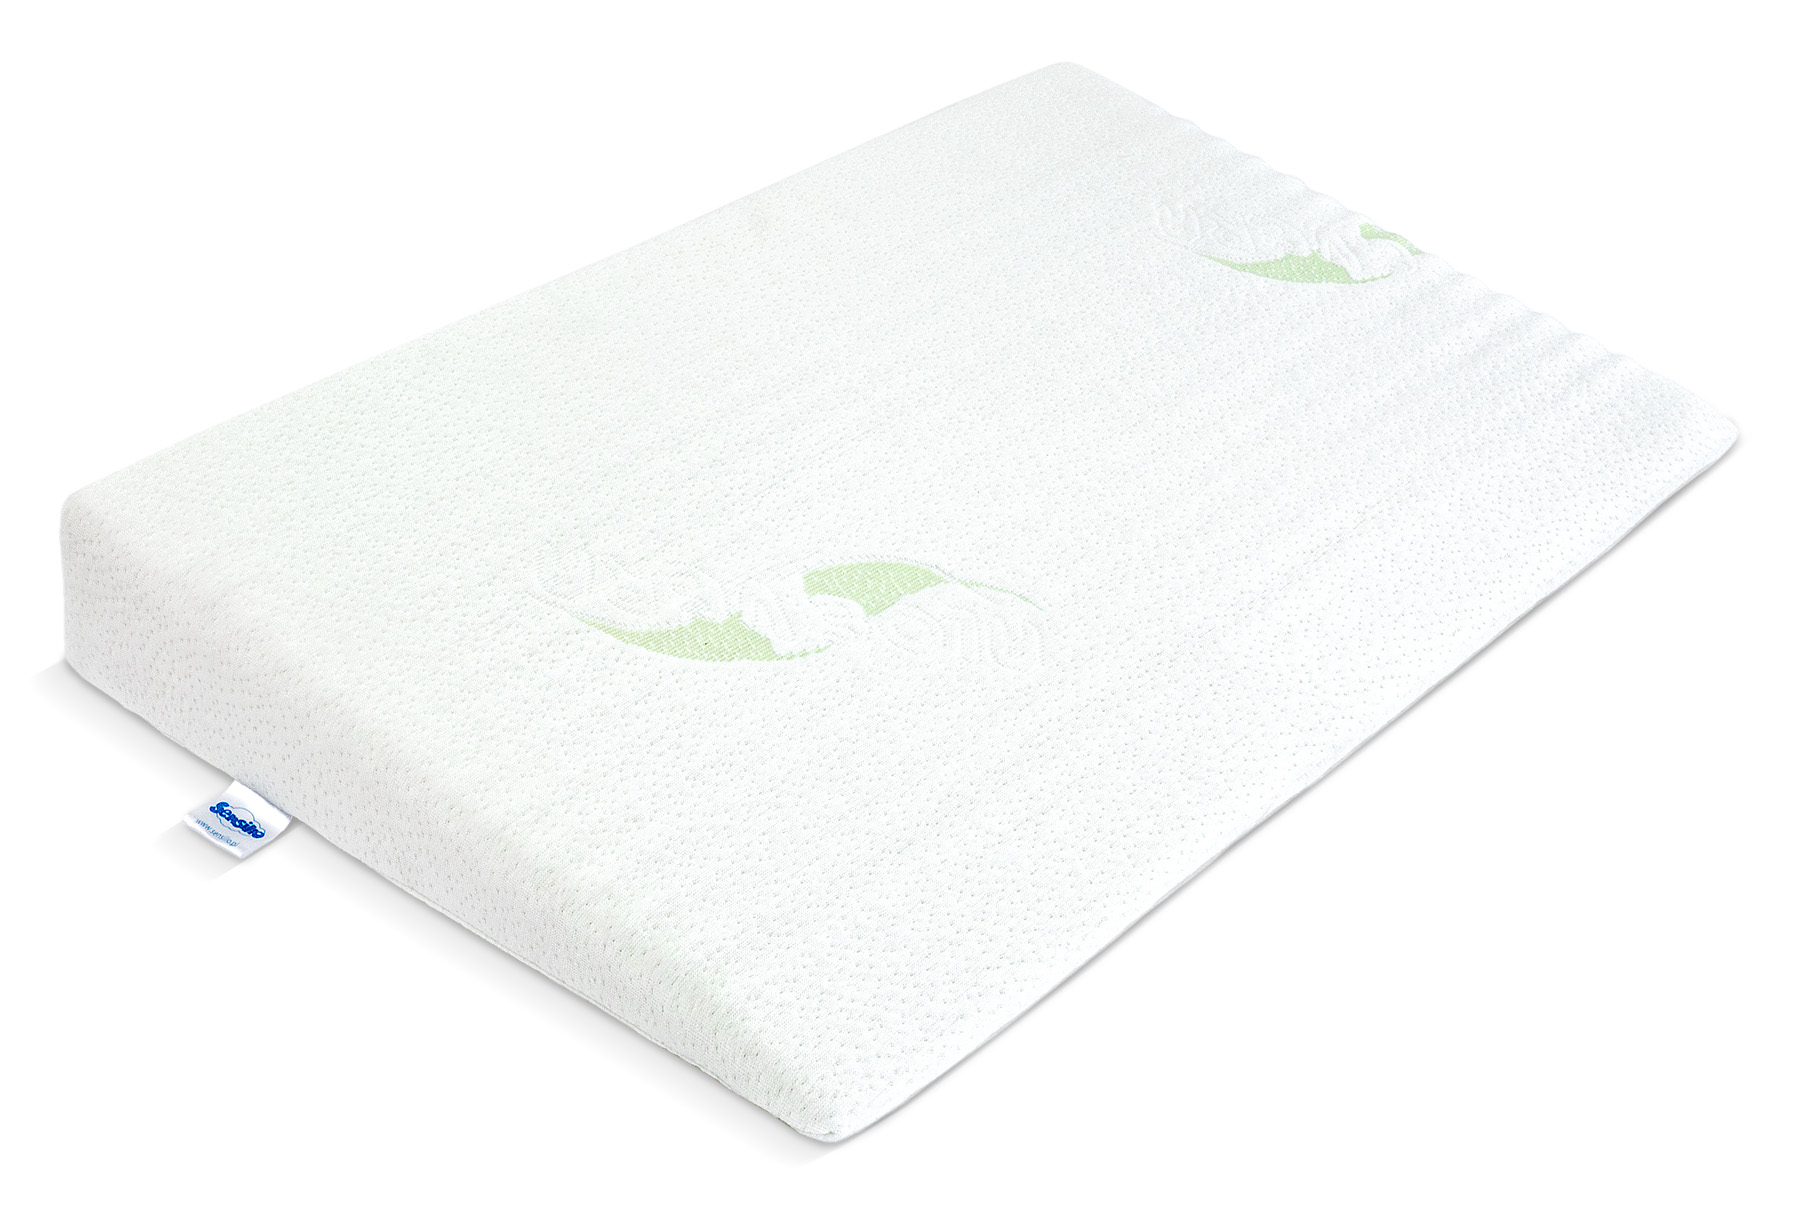 Luxe Aloe Vera Cot Wedge Pillow – 38×60